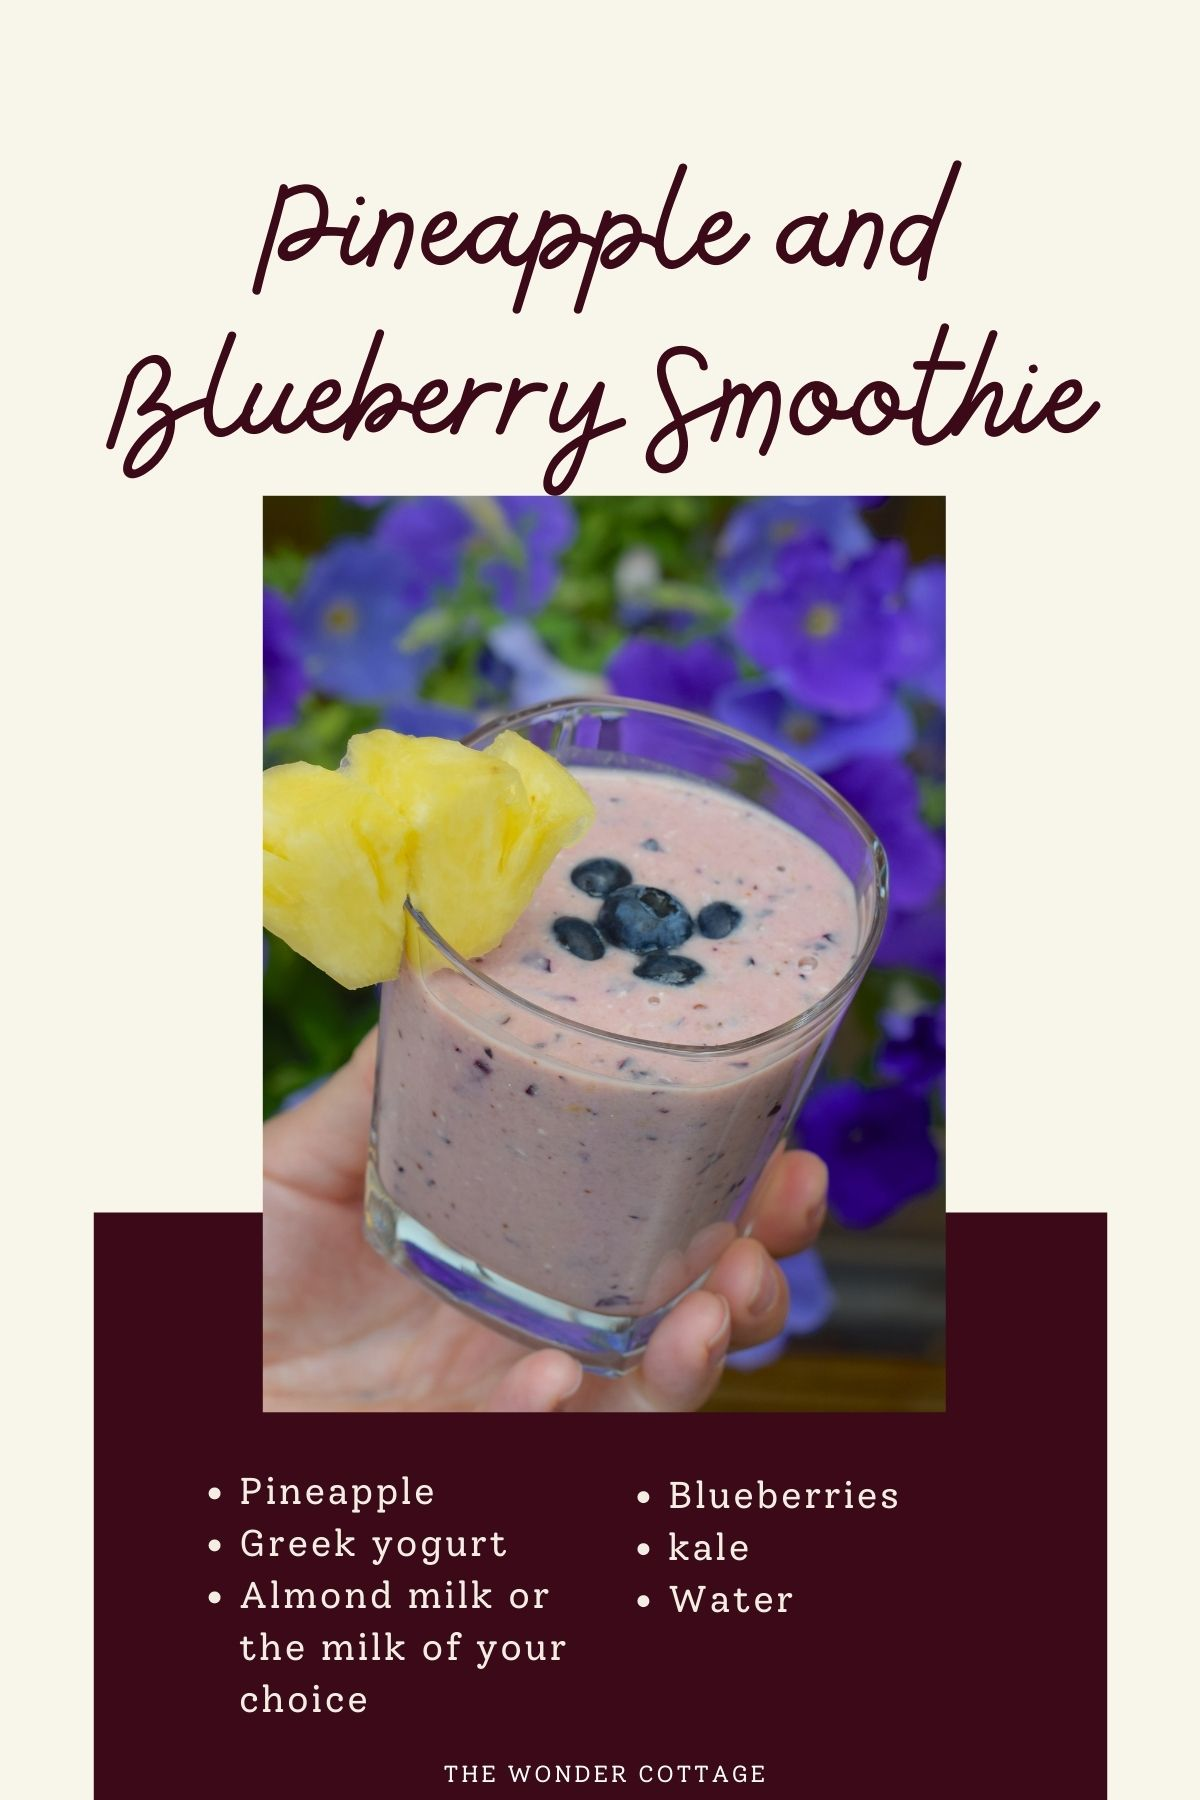 Pineapple and blueberry smoothie